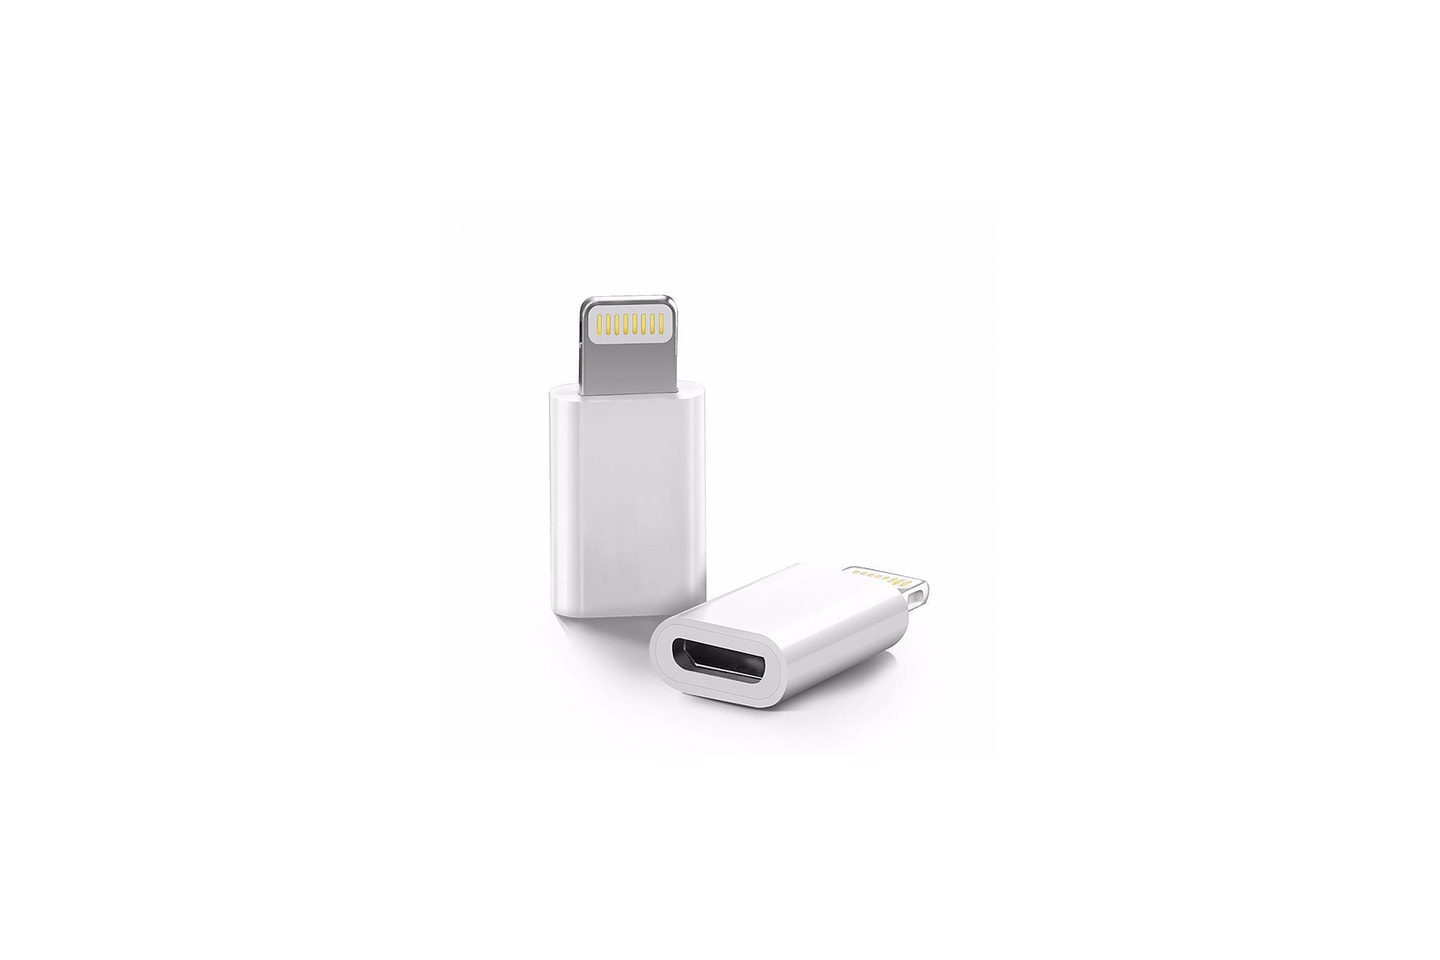 Lightning adapter for micro USB